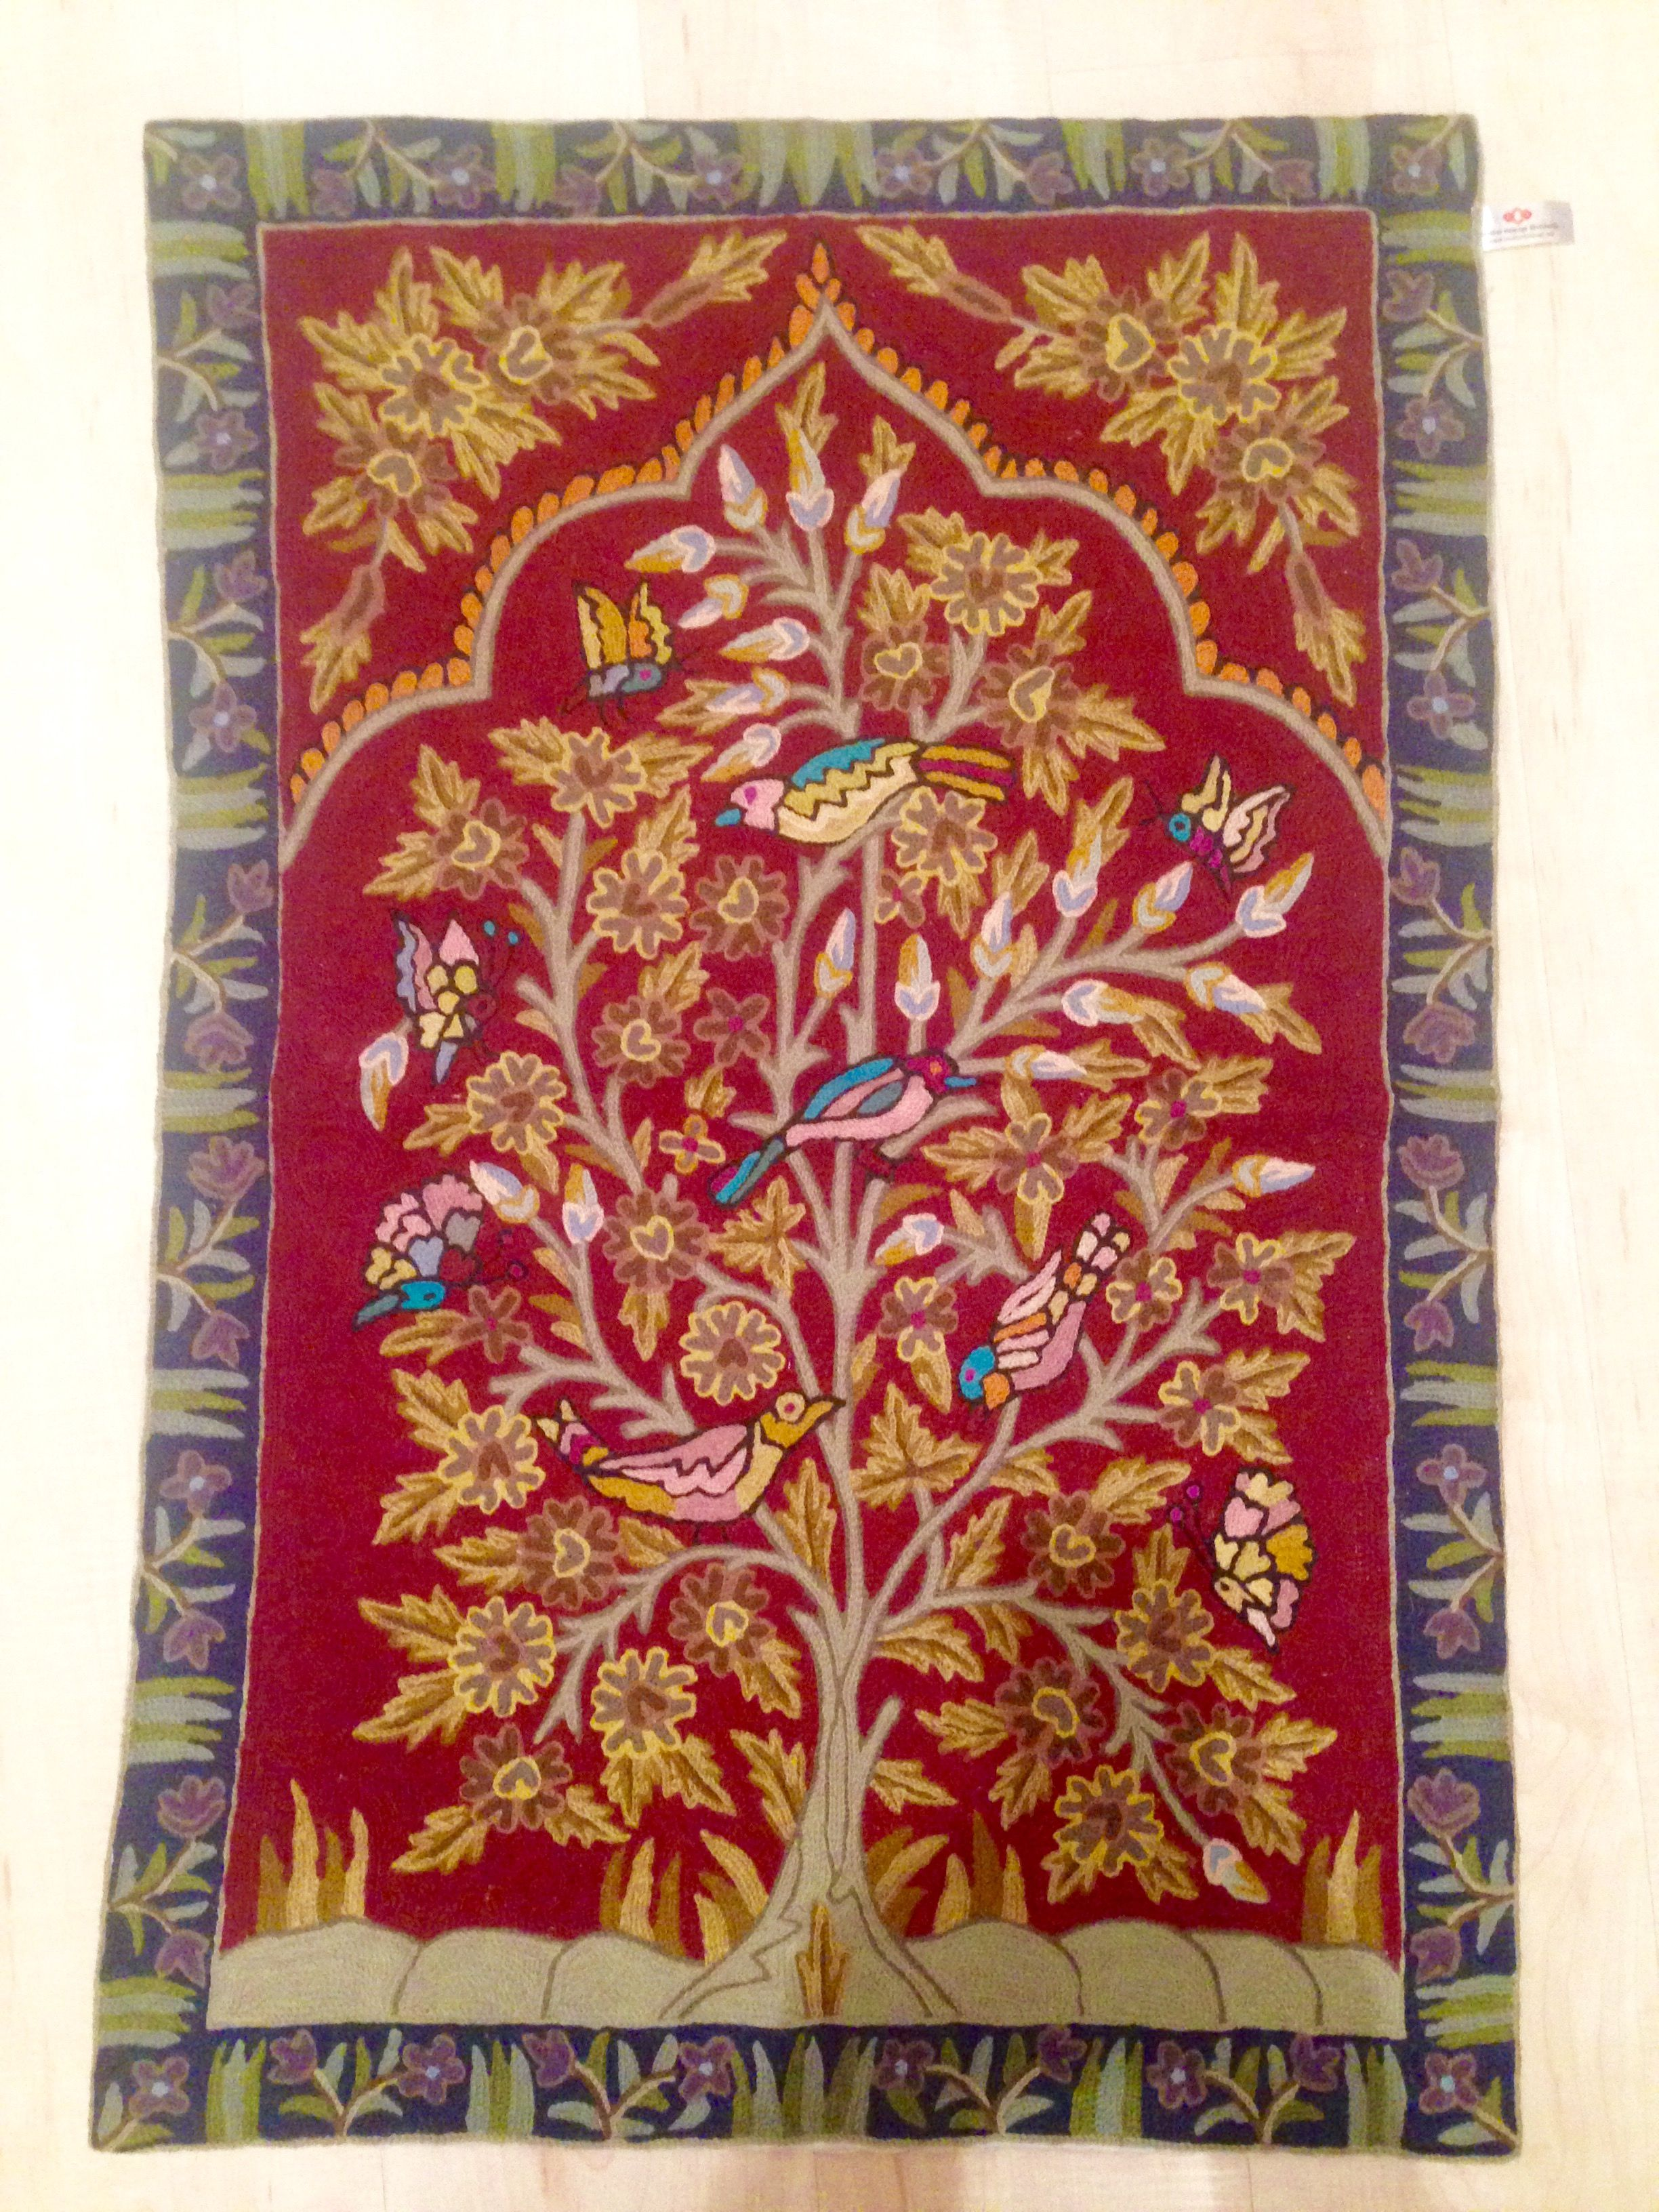 Handmade Kashmiri Wool Embroidery Wall Hanging Tapestry